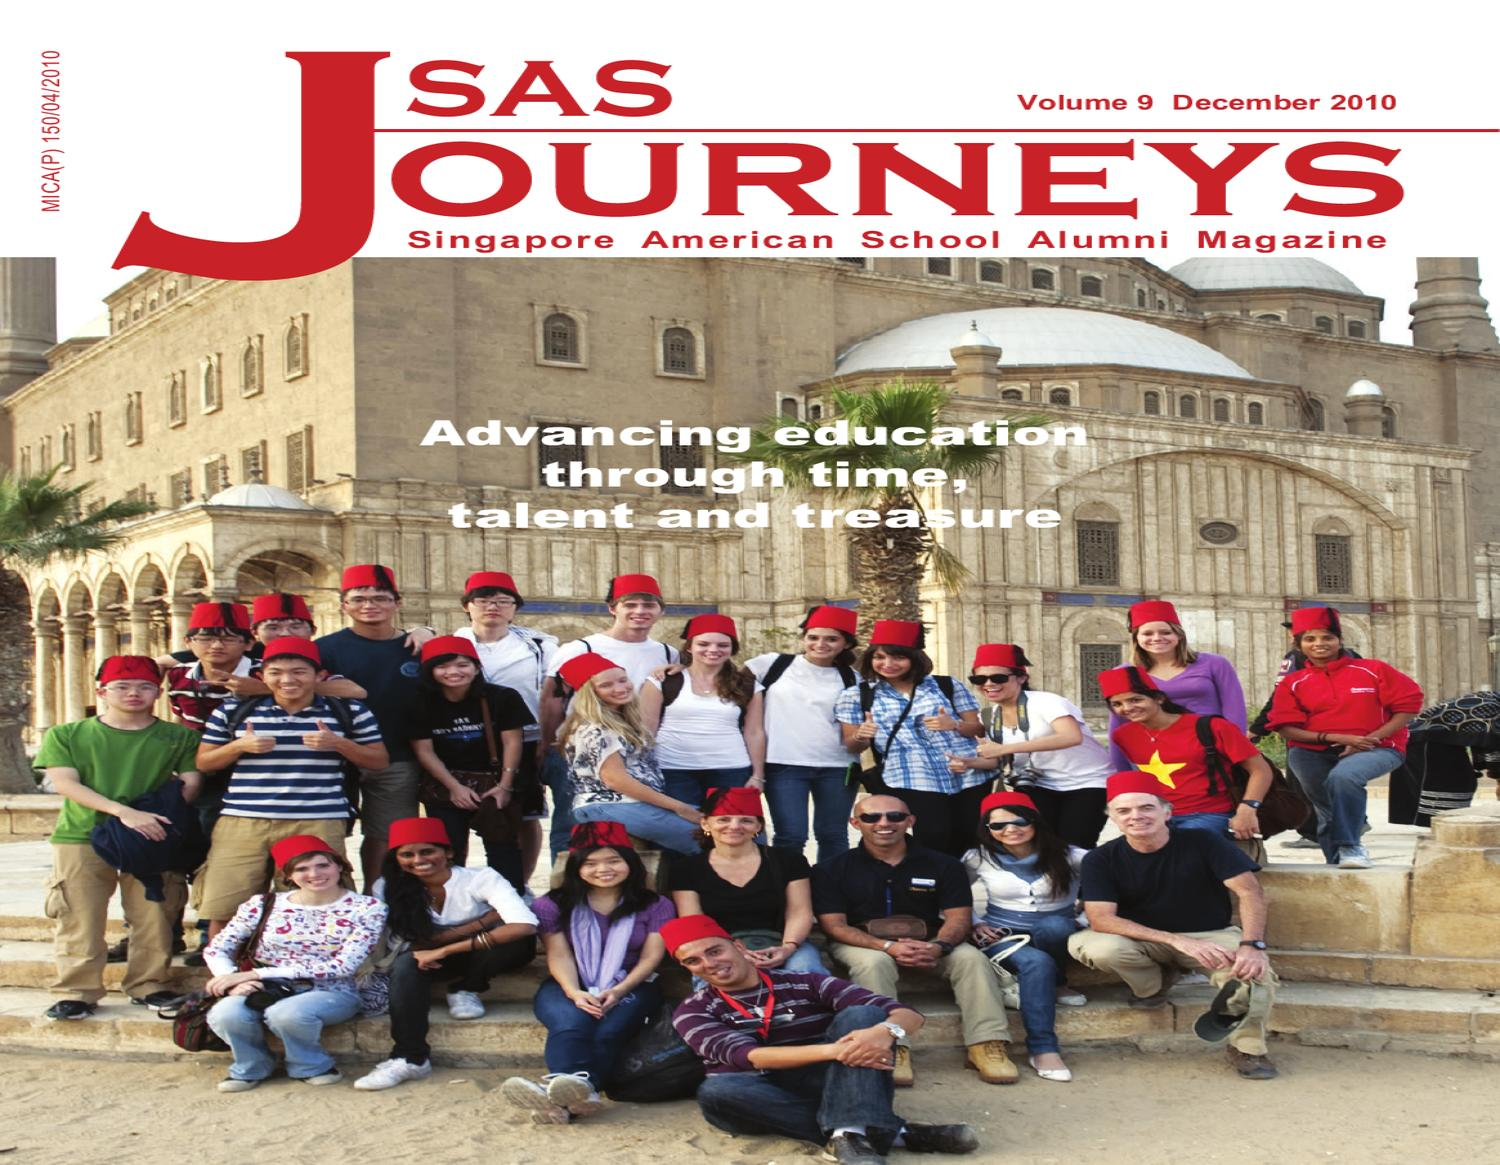 Singapore American School Journeys December 2010 Volume 9 By Young Loves Physics September Issuu